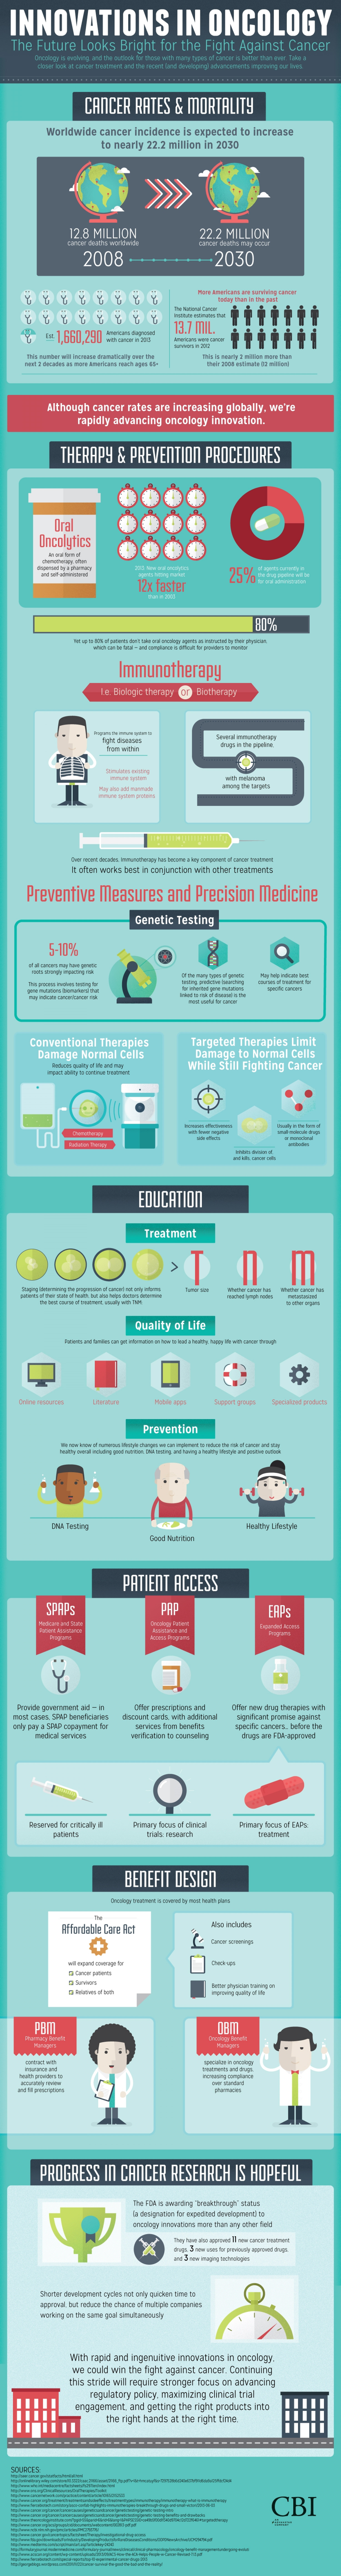 Innovations In Oncology Infographic